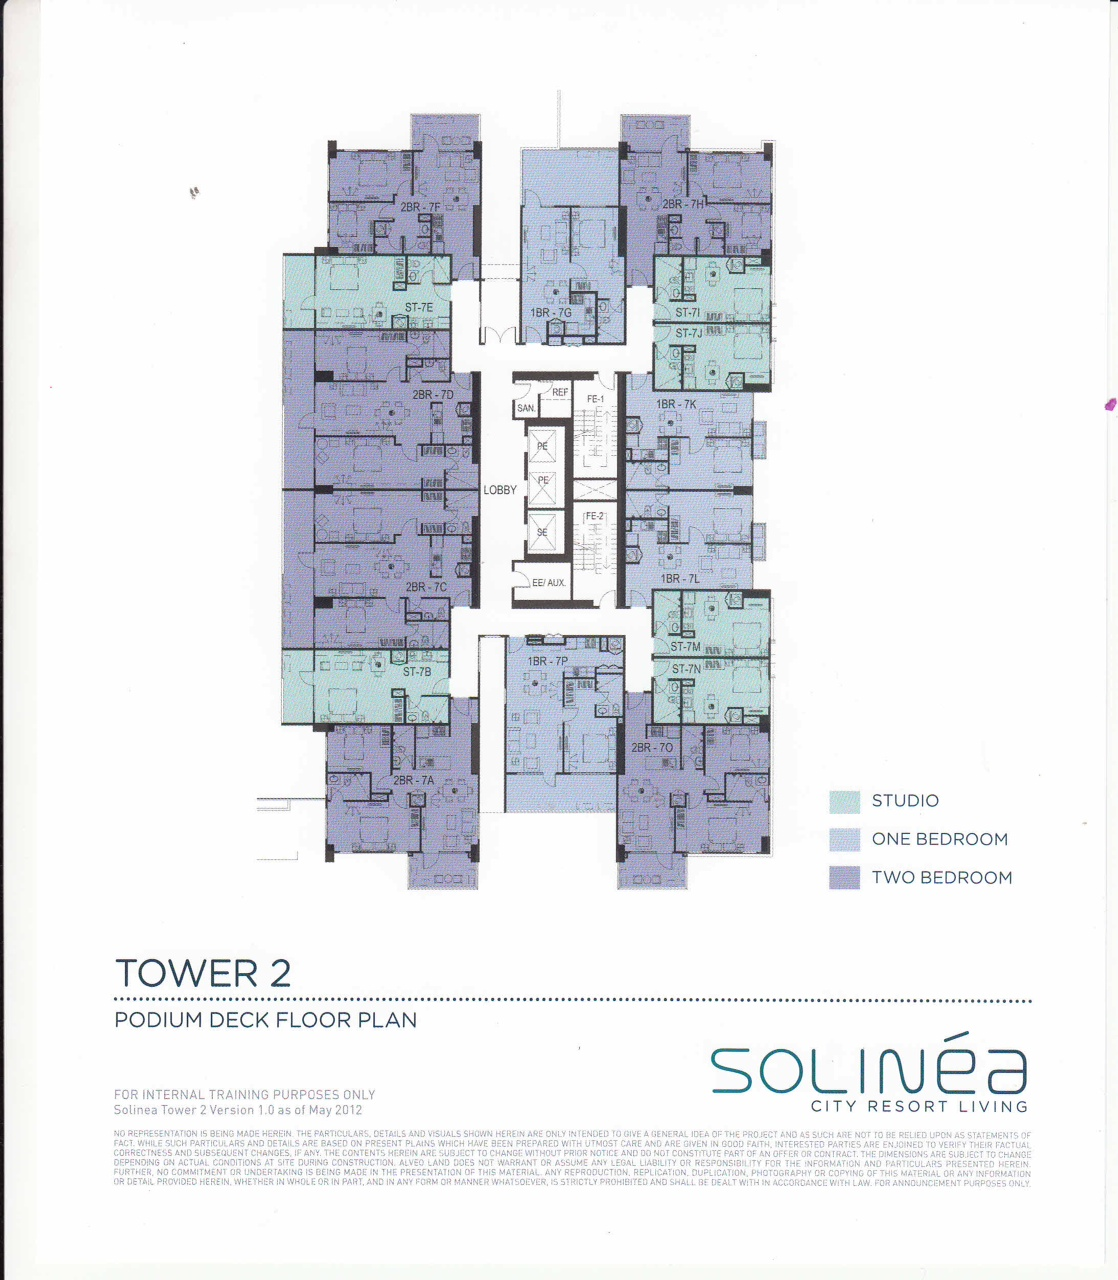 Solinea Tower 2 - Podium Deck Floor Plan